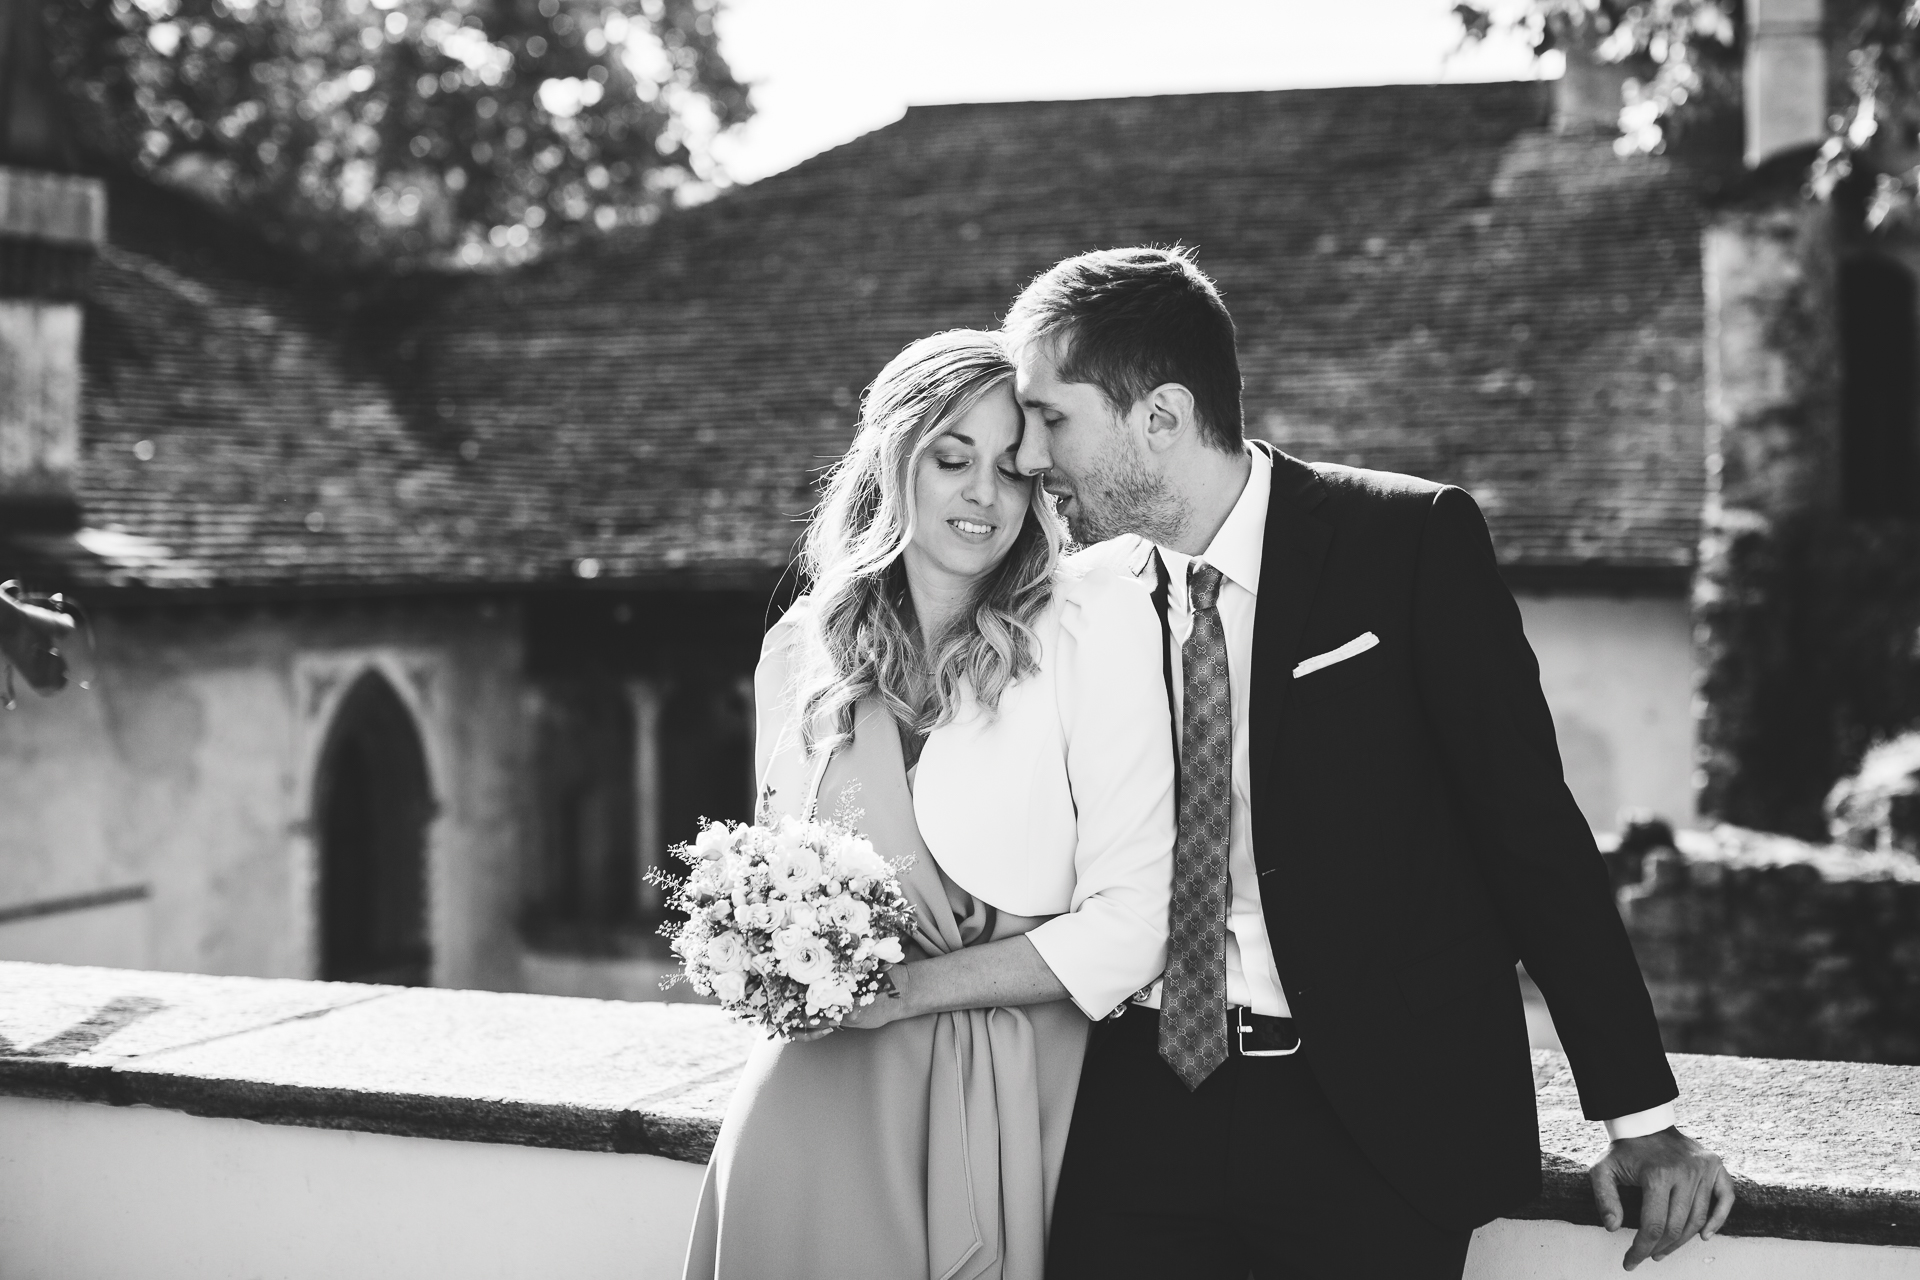 Switzerland Elopement Portrait in Black and White | the couple recline against a low wall